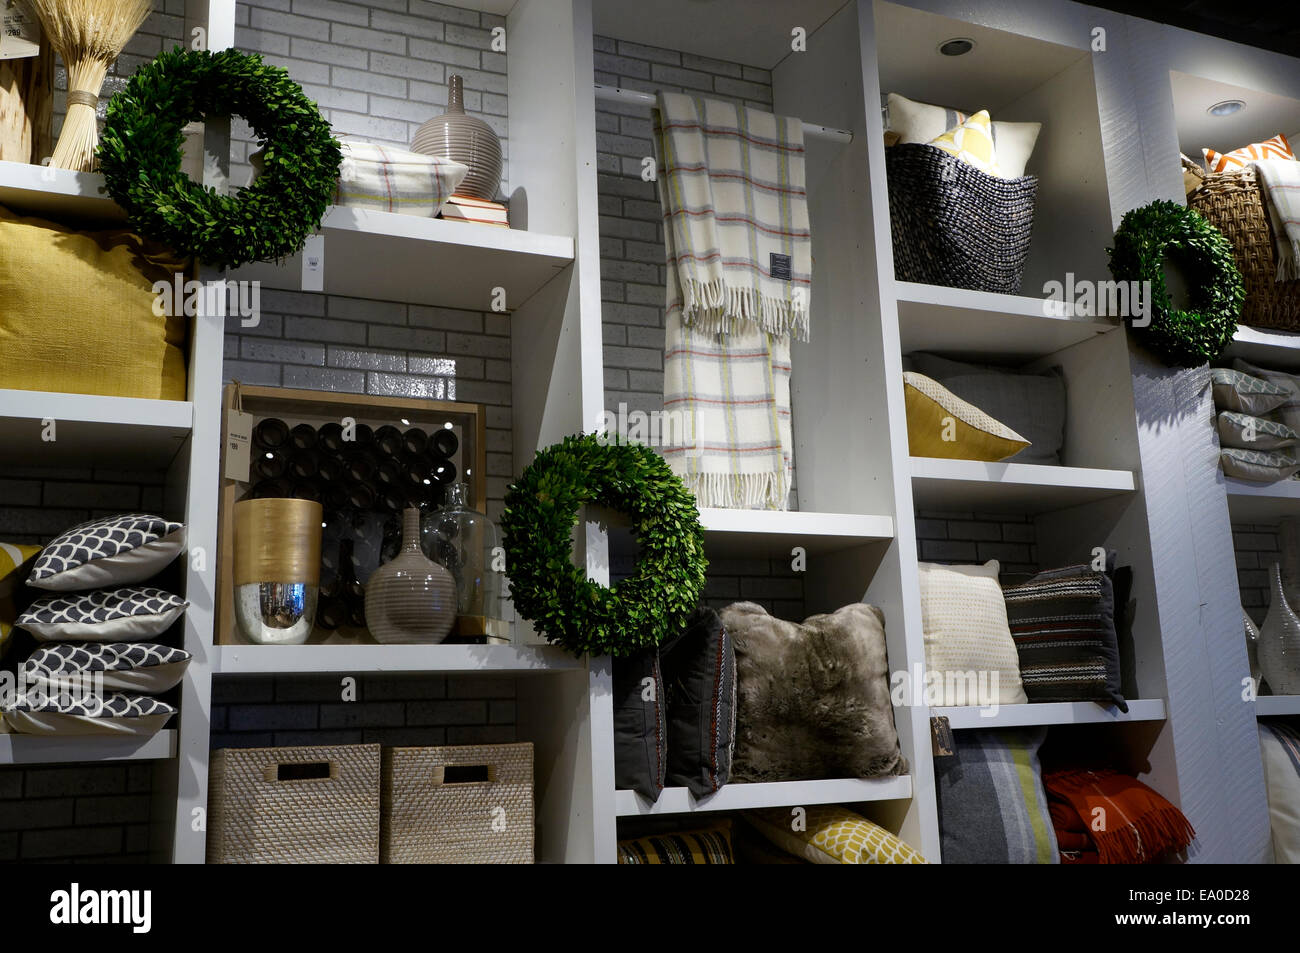 Christmas Home Decor Display In A Store, Vancouver, British Columbia, Canada